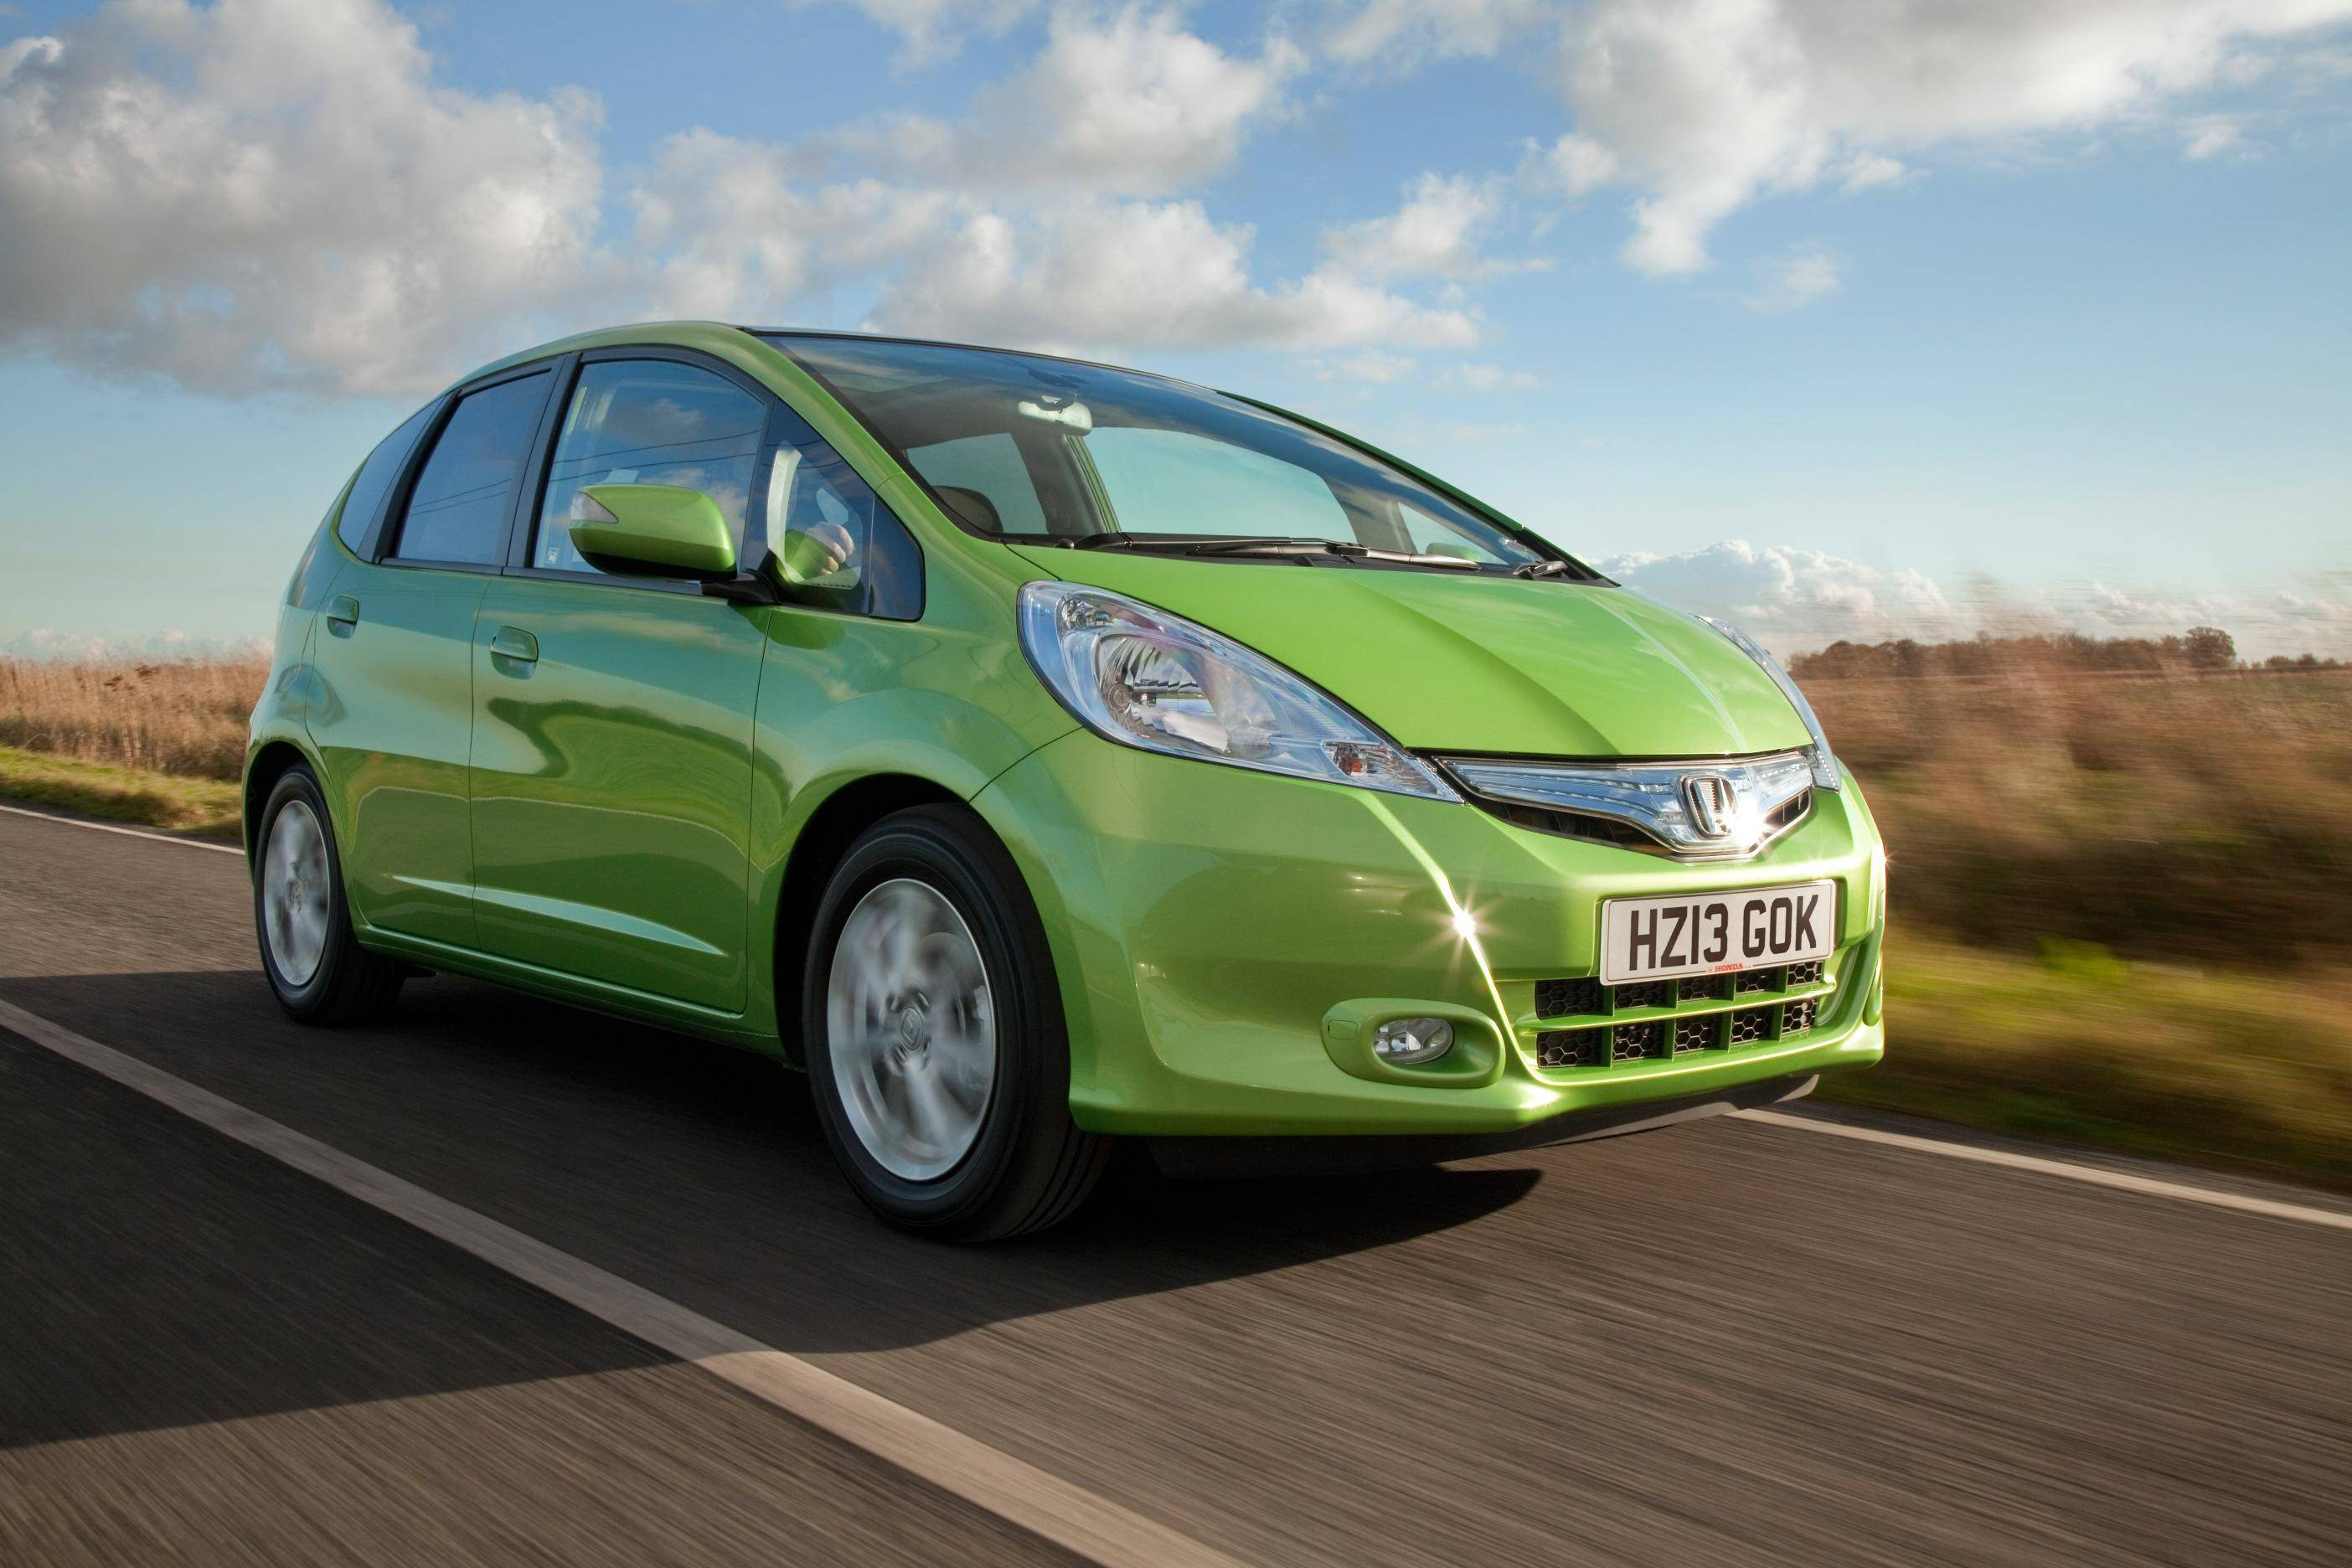 image of a green honda jazz hybrid car exterior